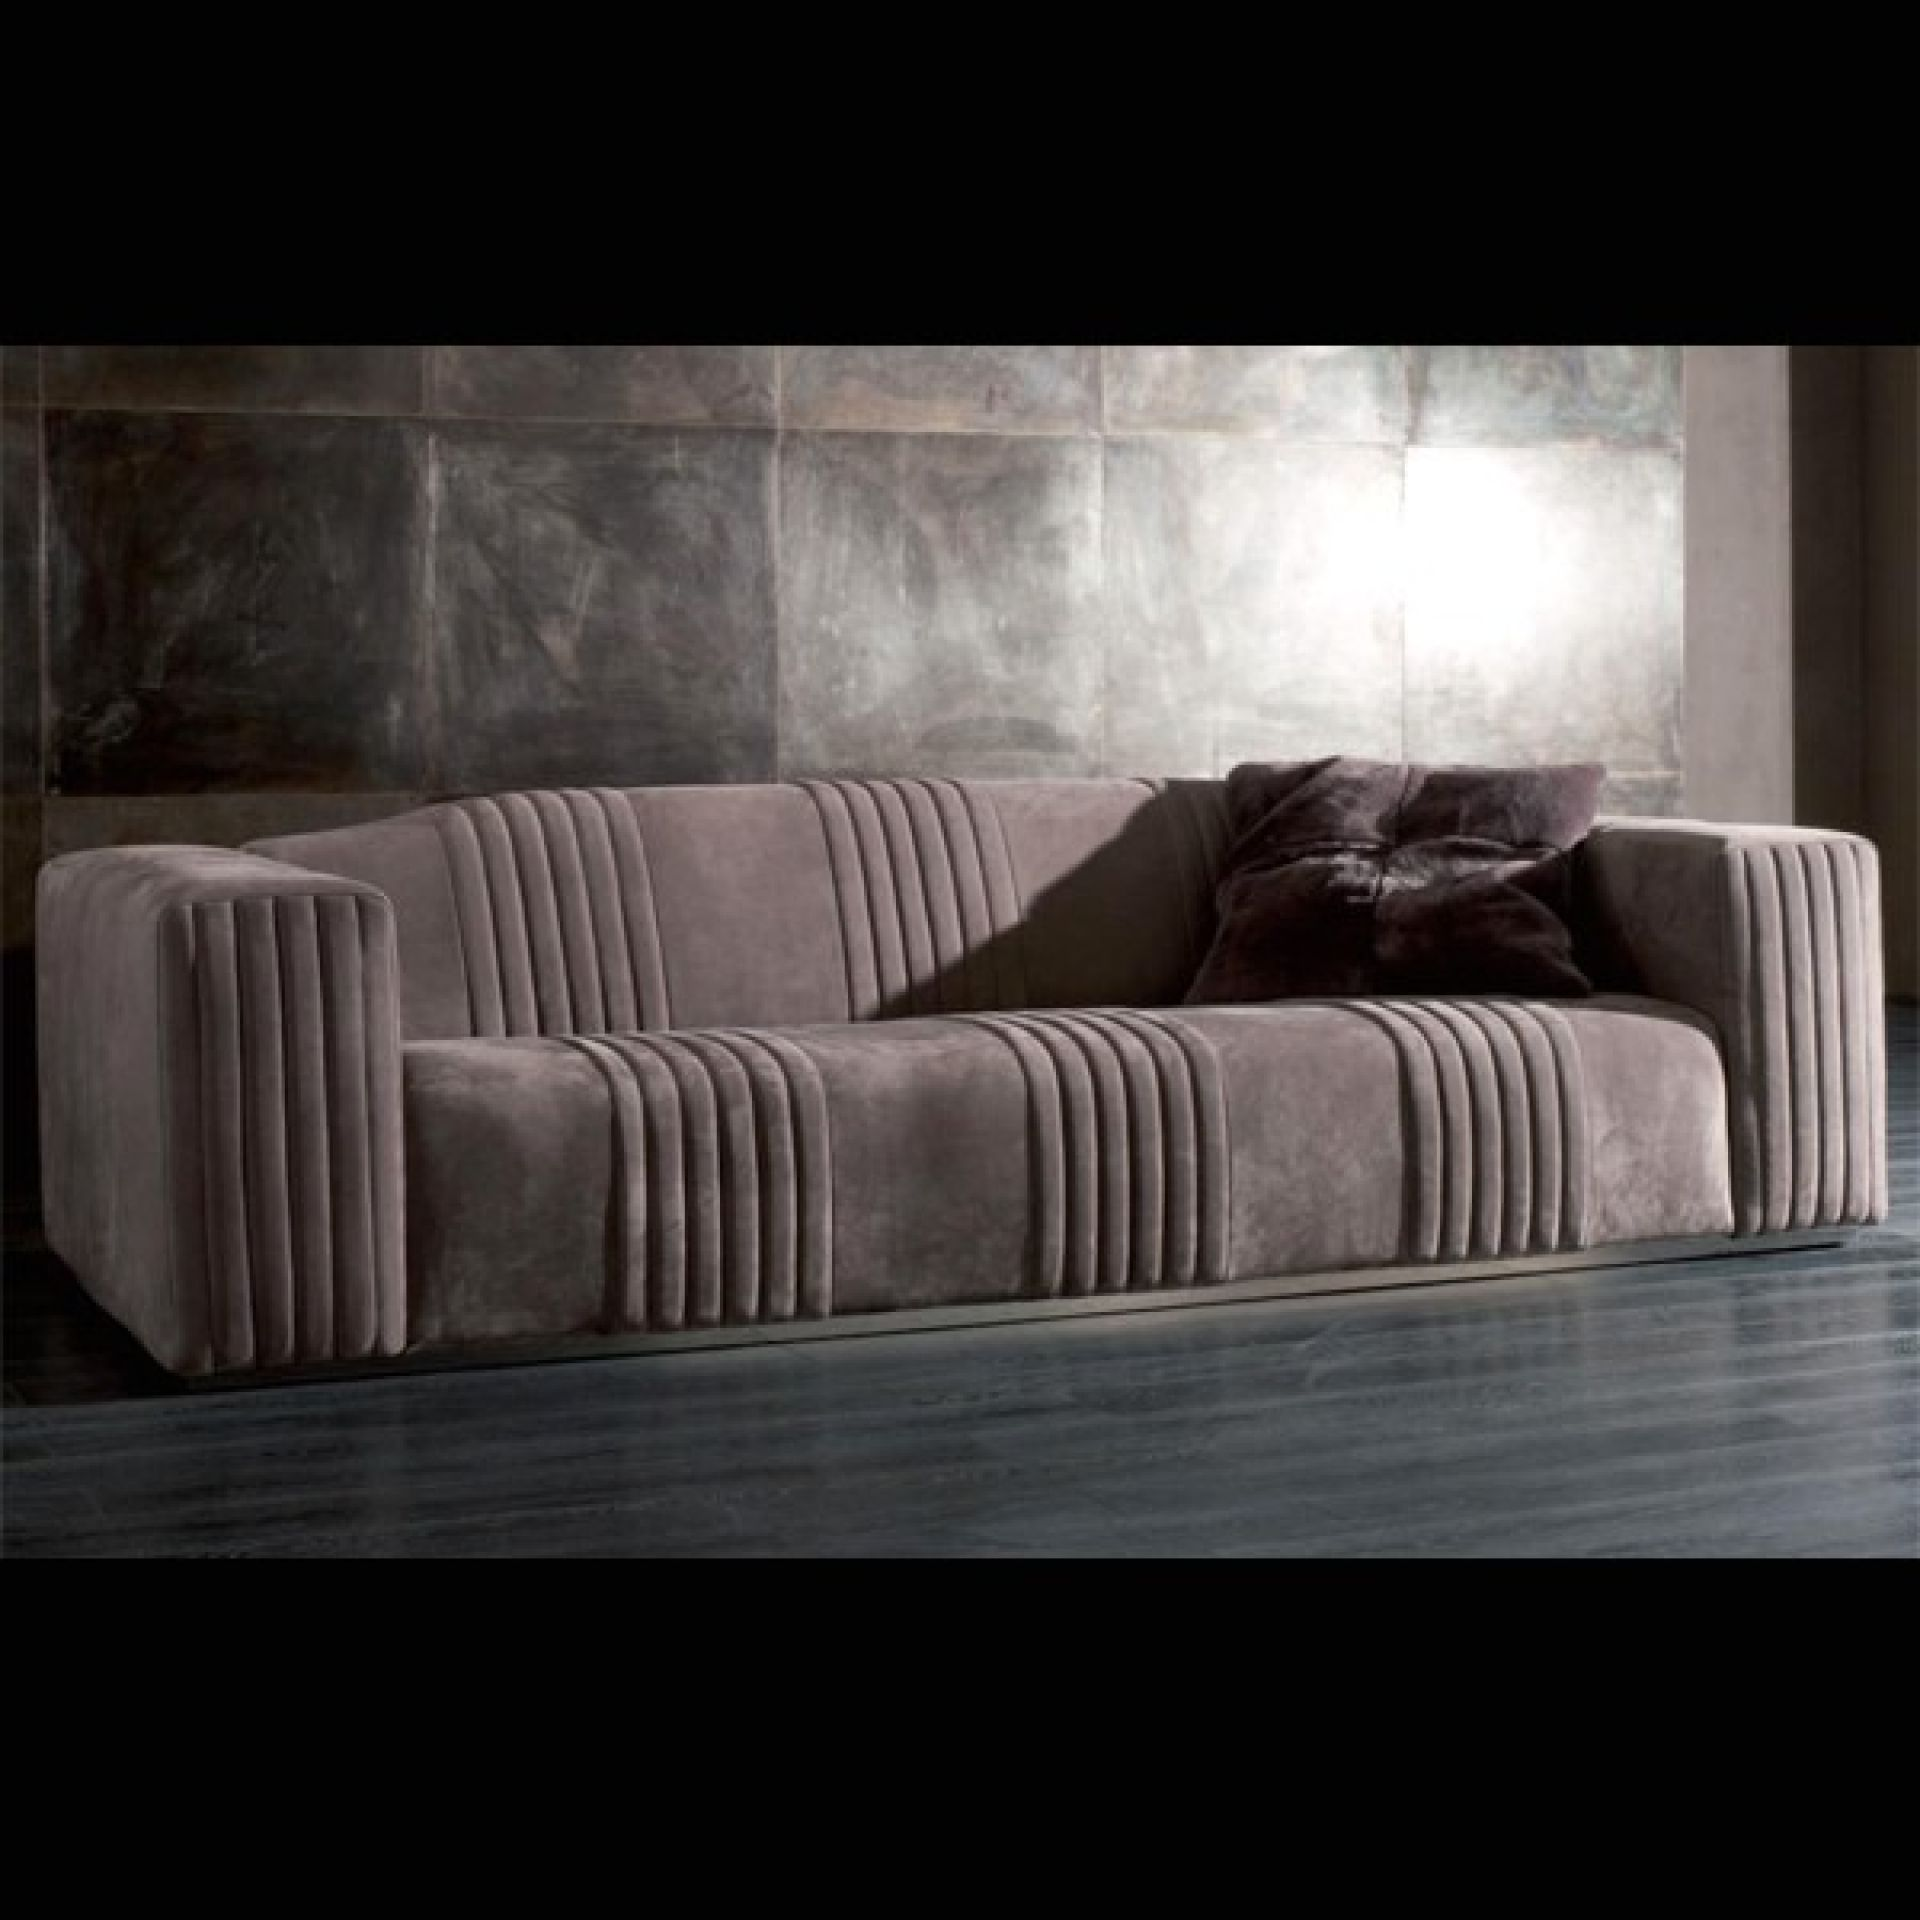 3-4 SEATER SOFA UPHOLSTERED WITH FABRIC CAT B 150-CADILLAC